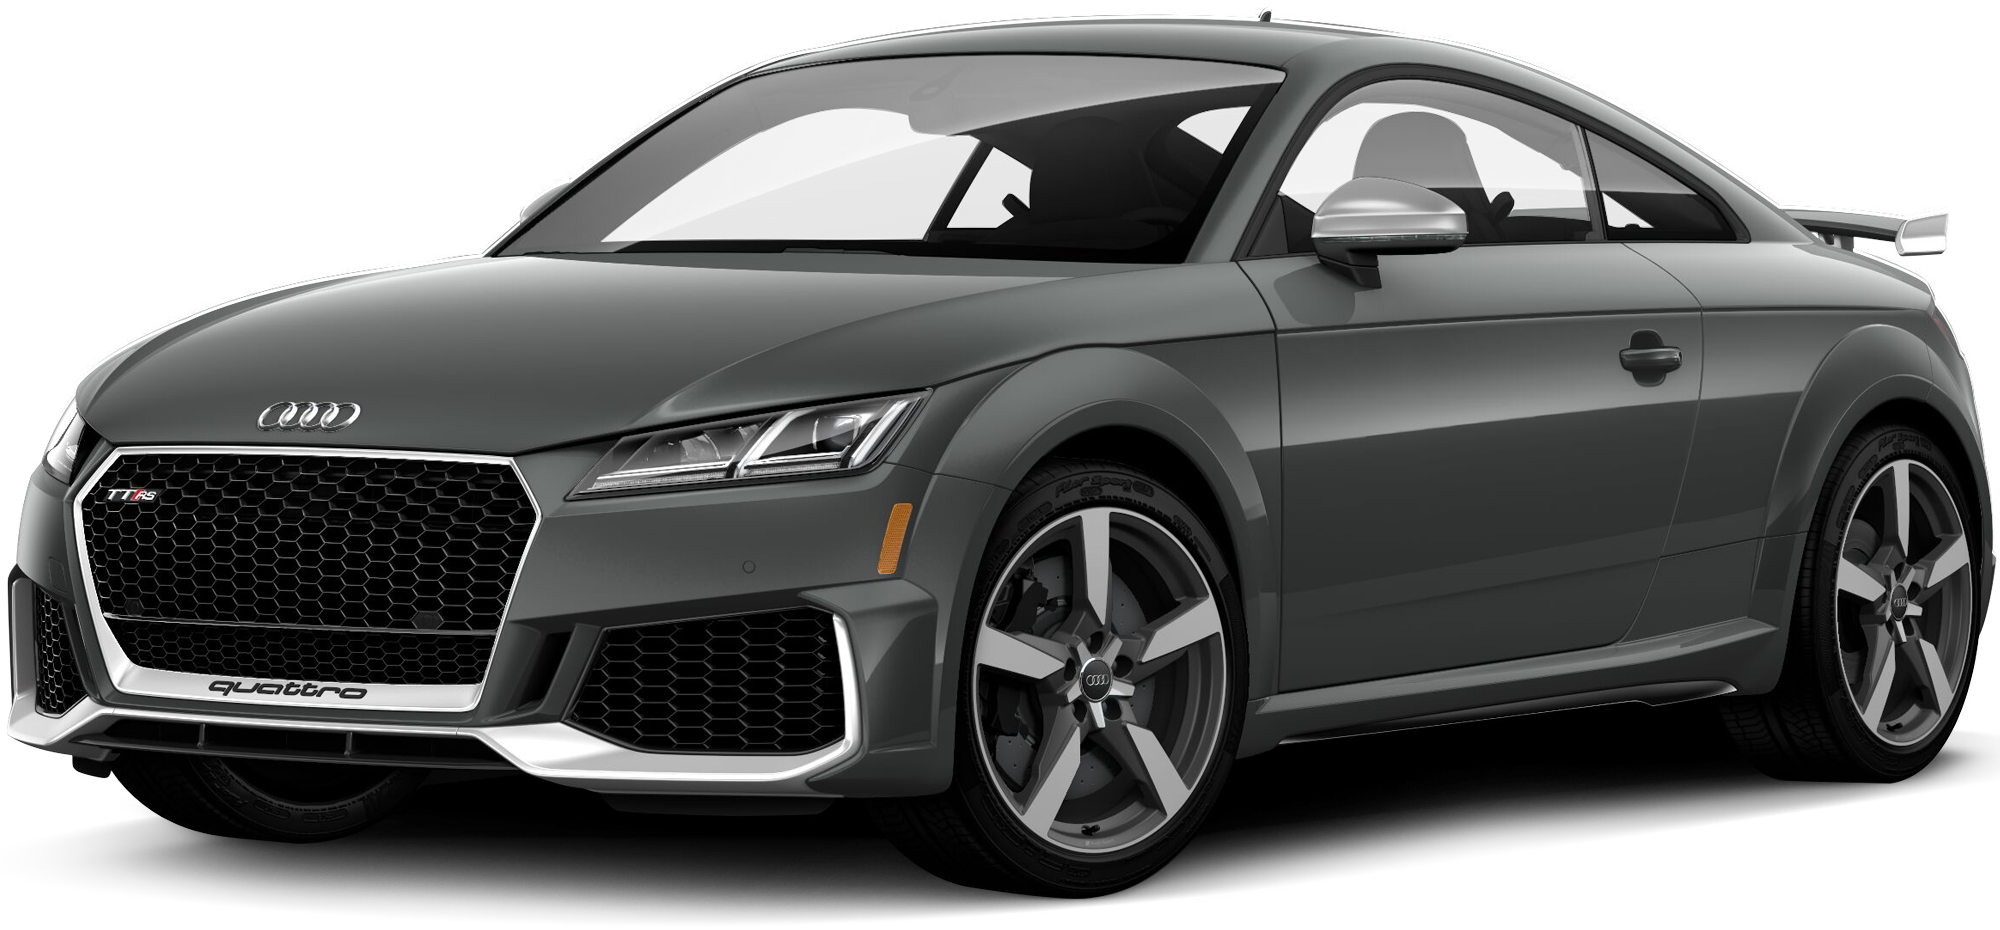 2019 Audi Tt Rs Incentives Specials Offers In Lexington Ky